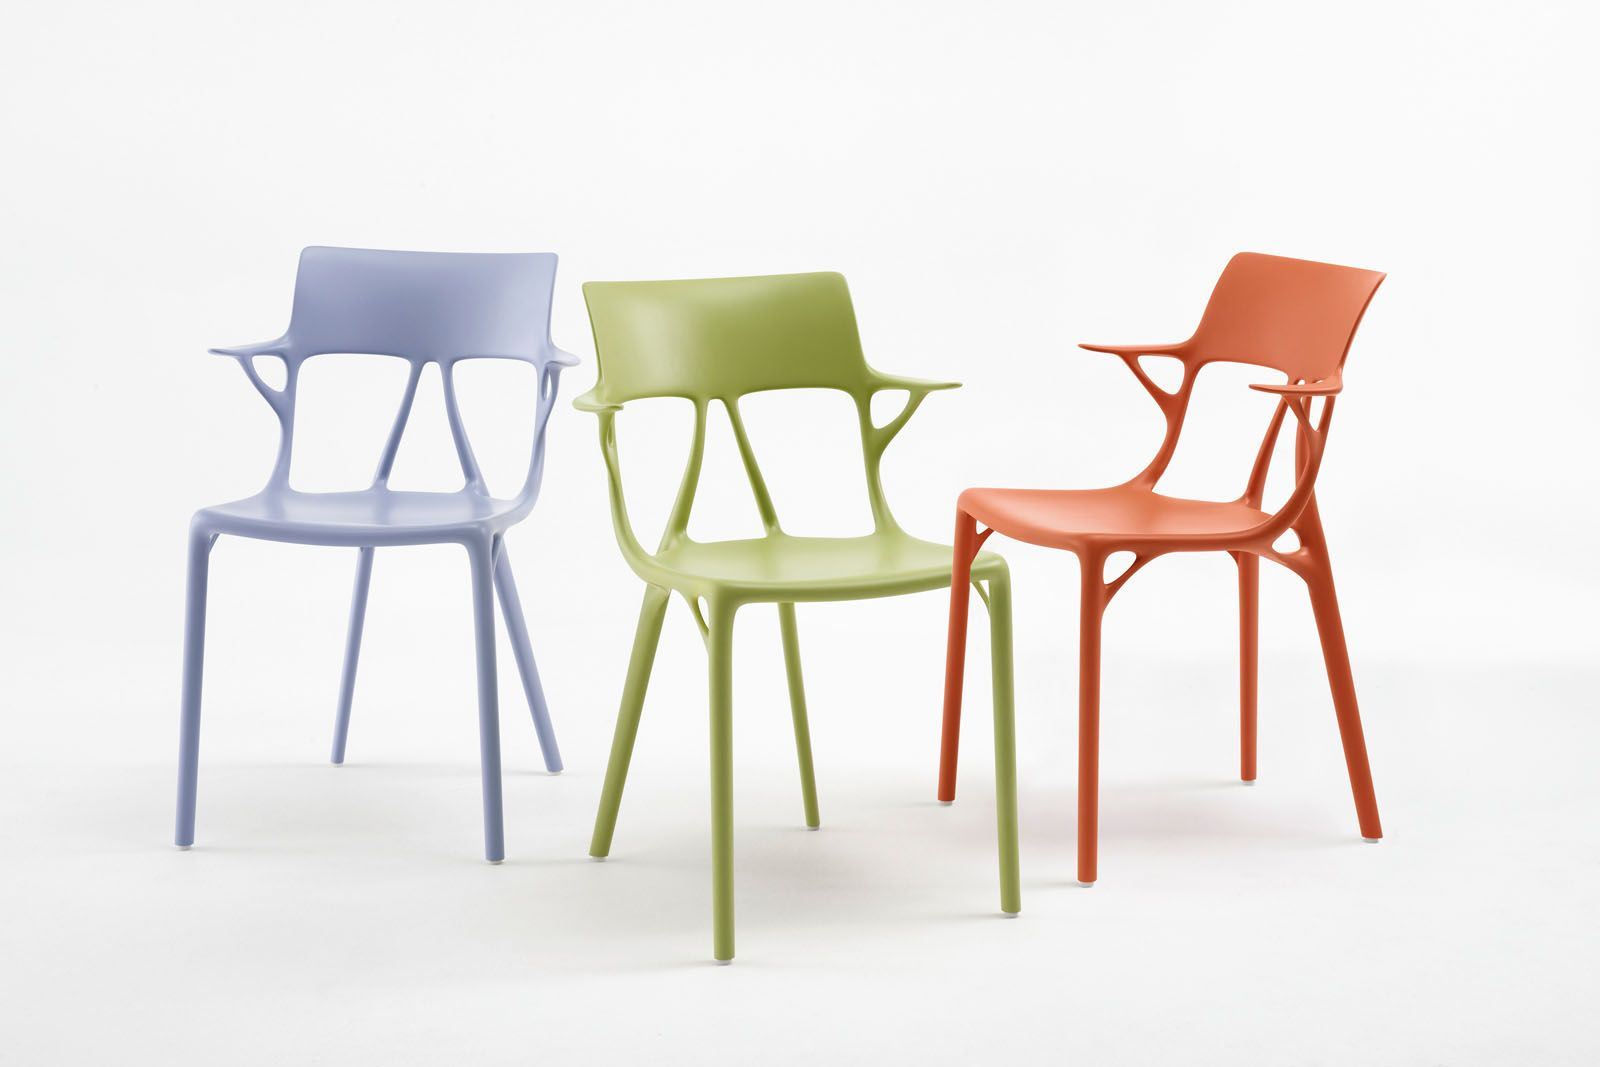 The Kartell A.I chair was created by Autodesk generative design software using creative input from Starck